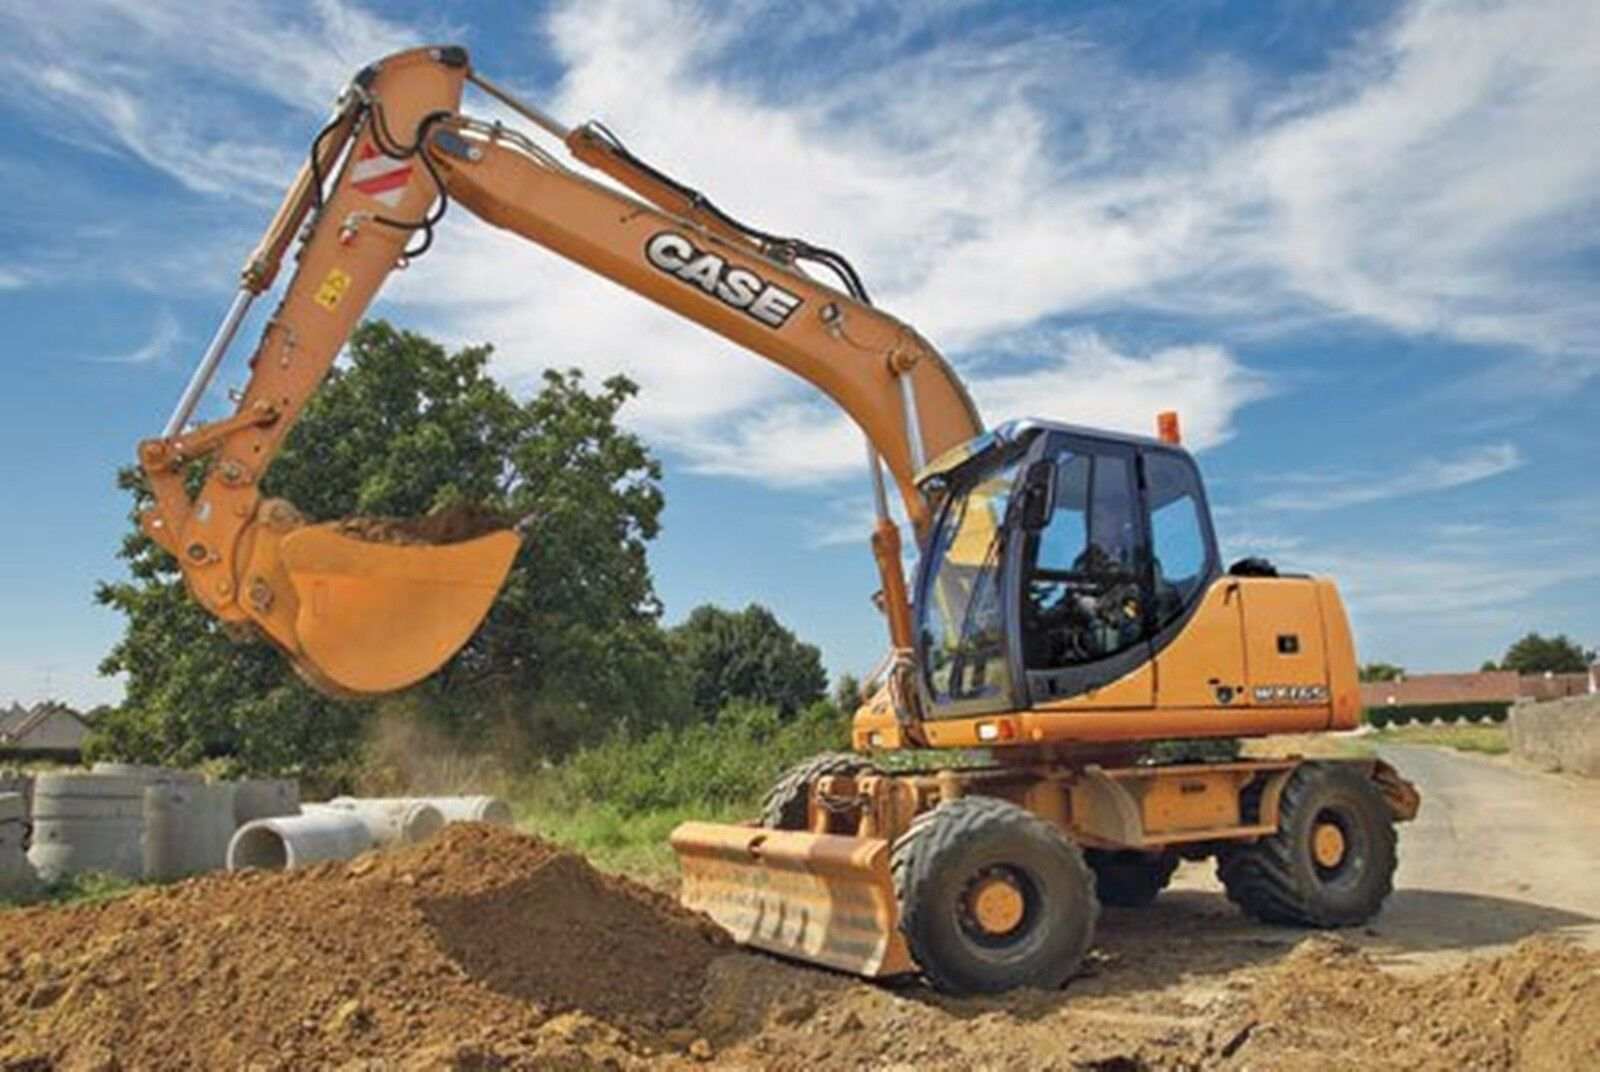 Case WX145 - WX165 & WX185 Excavator Workshop Manual 1 of 3FREE Shipping  See More